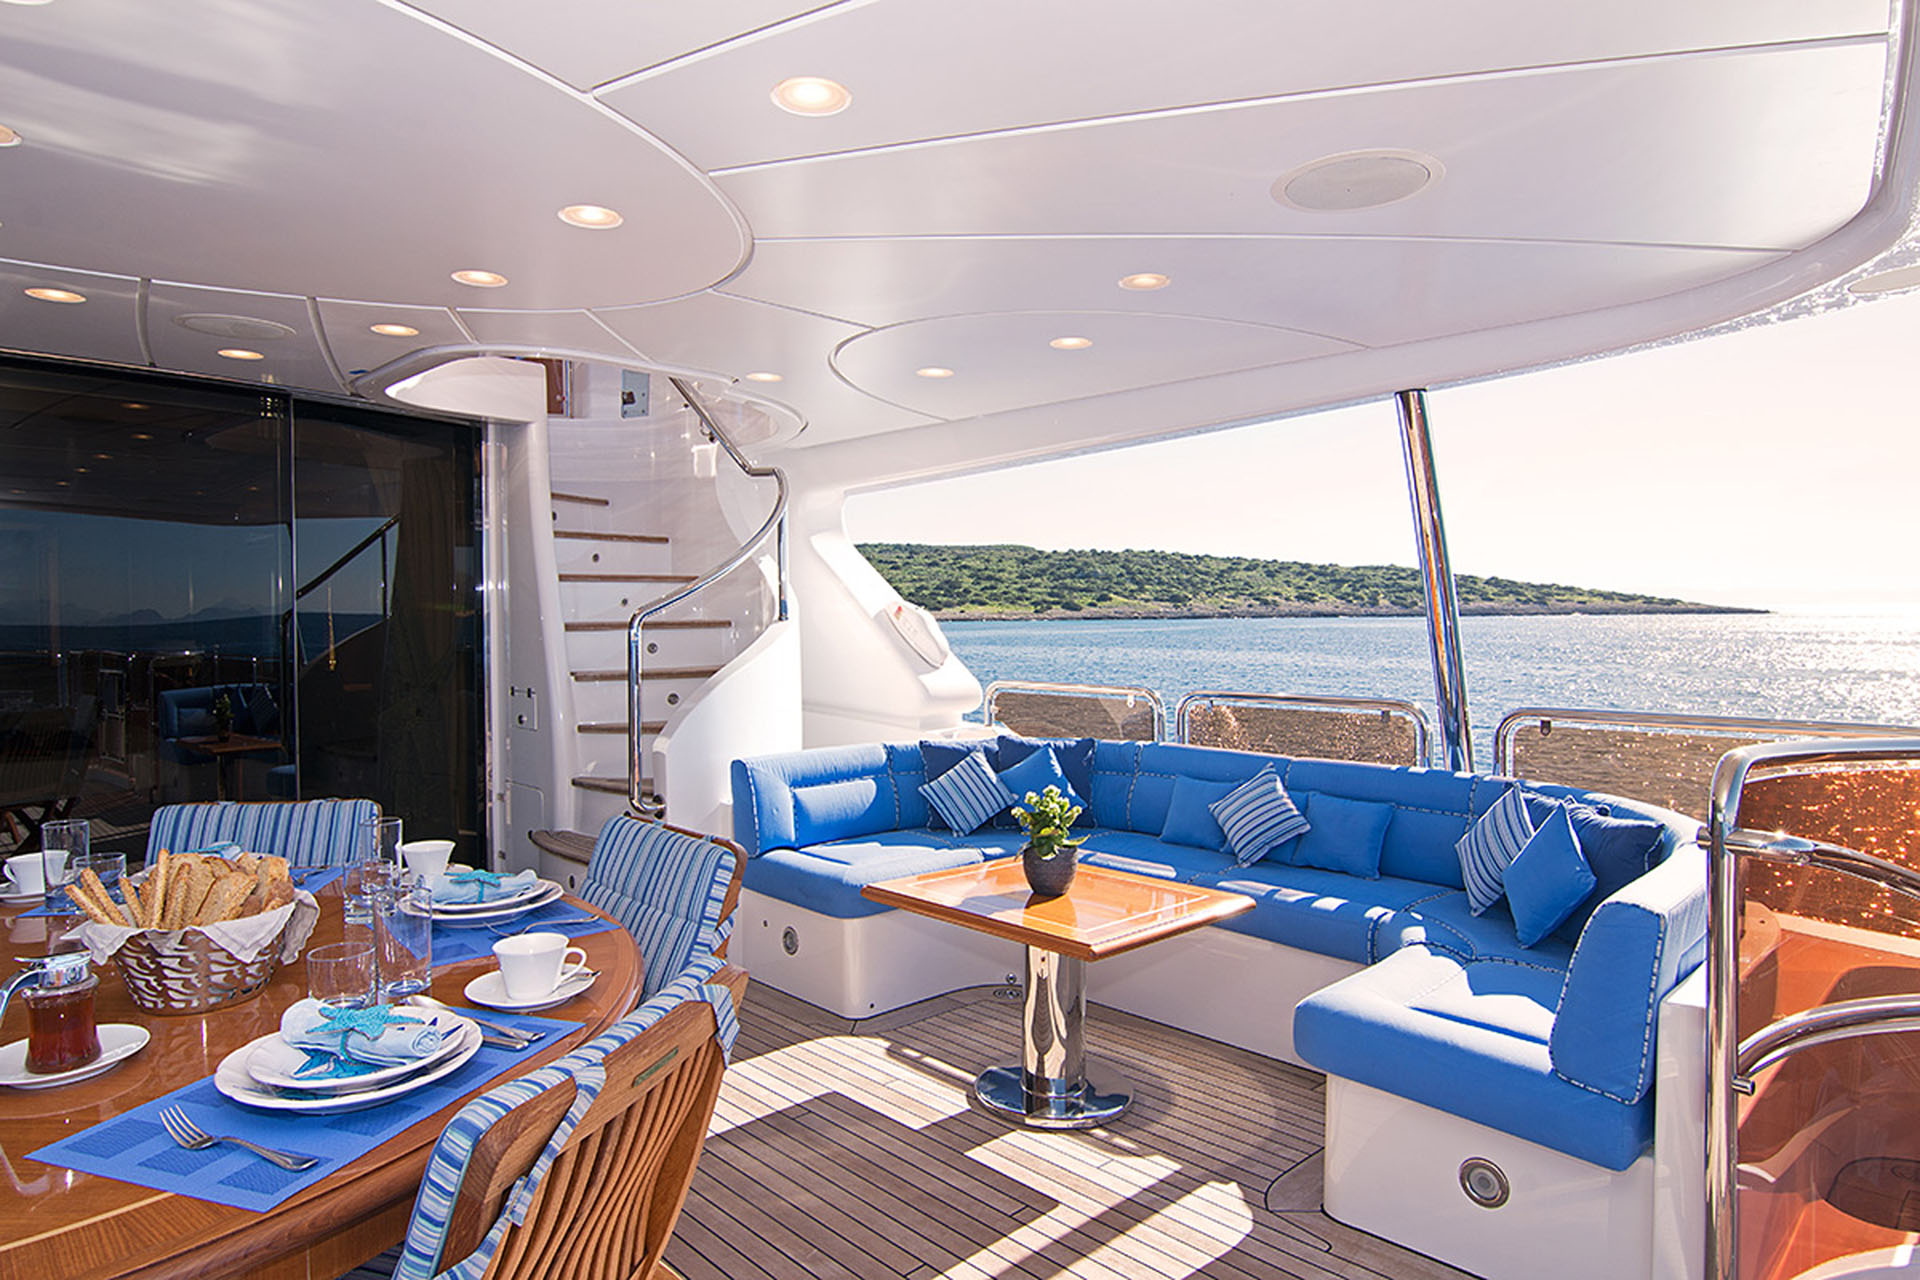 Aft Deck Exterior Dining And Seating